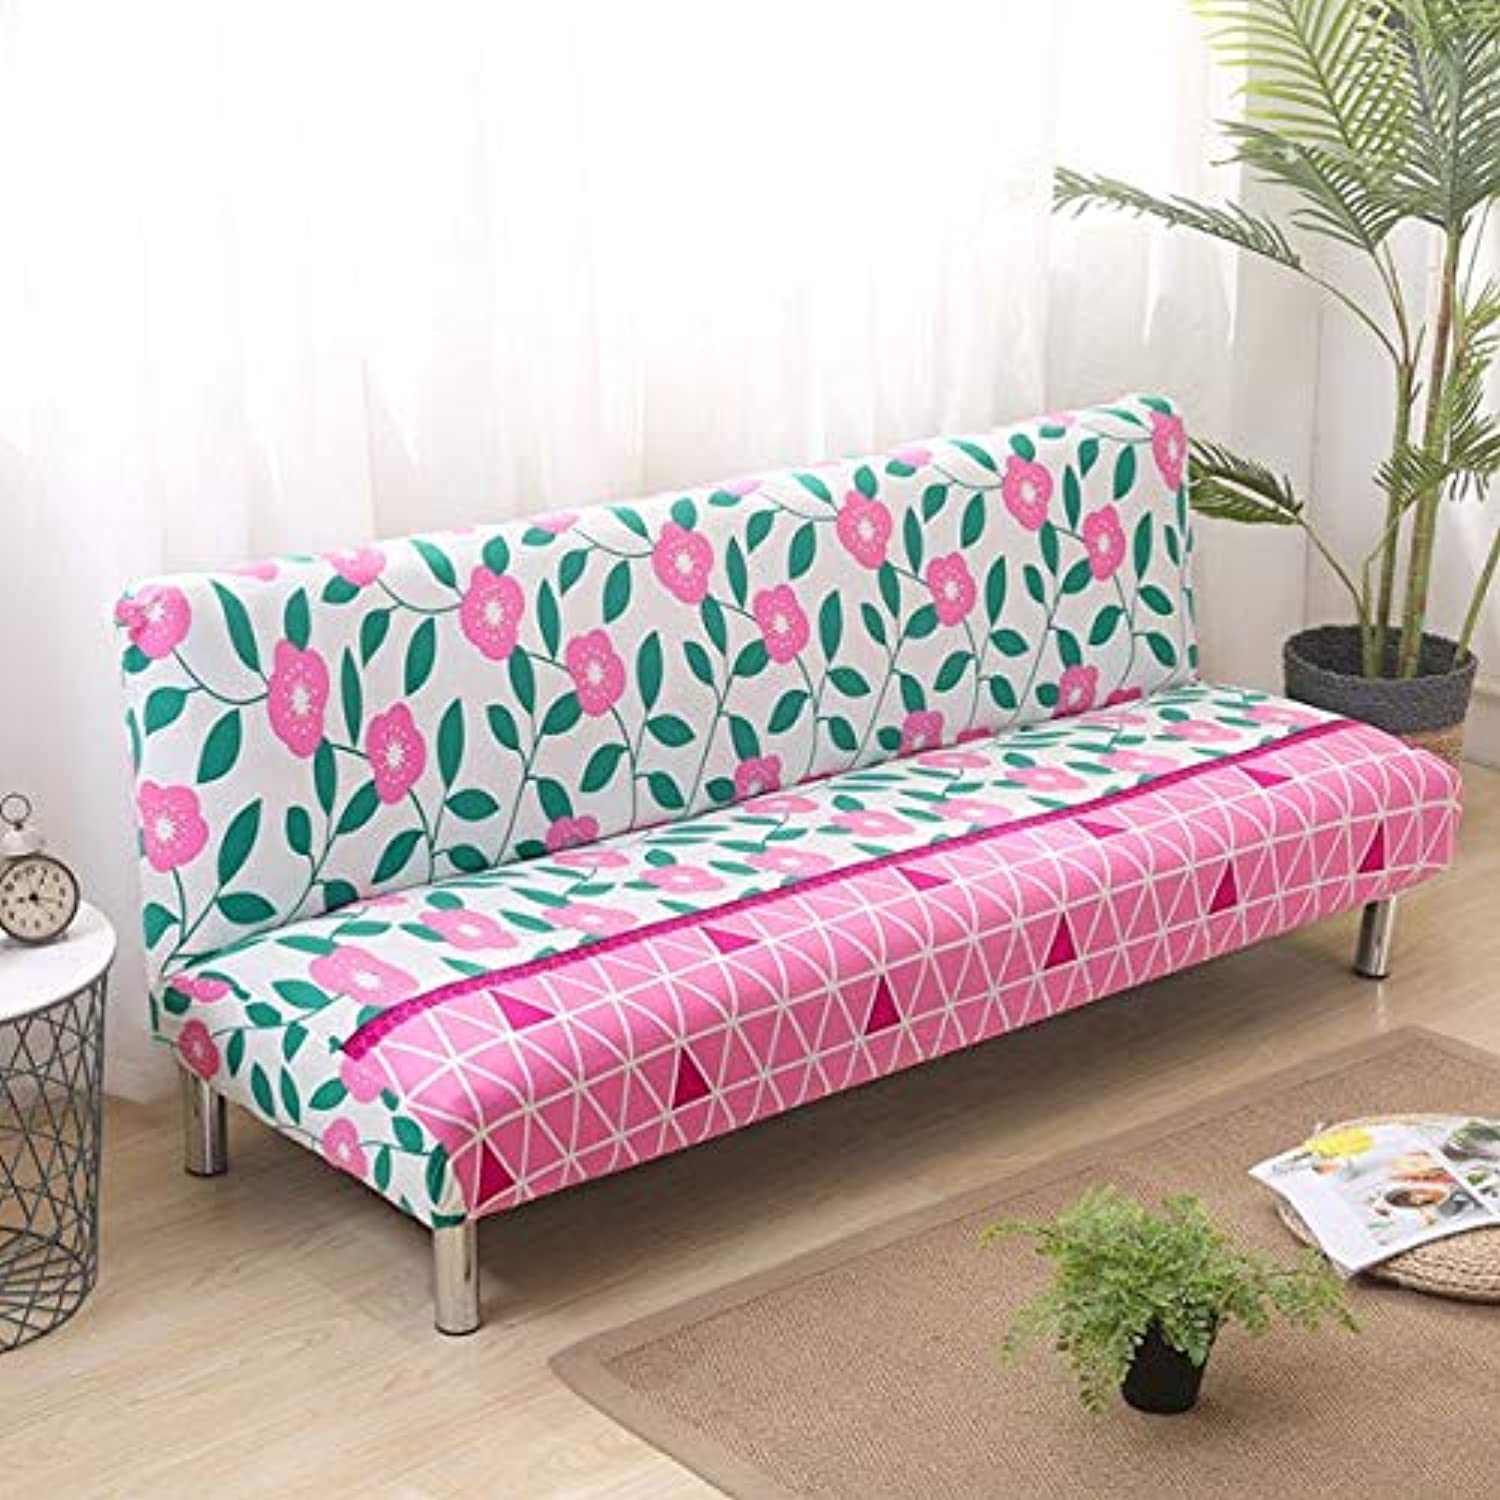 Big Elasticity Couch Cover Universal Sofa Cover Furniture Sofa Covers Without Armrest Folding Cover for Sofa Bed 1pc 155-200cm   14